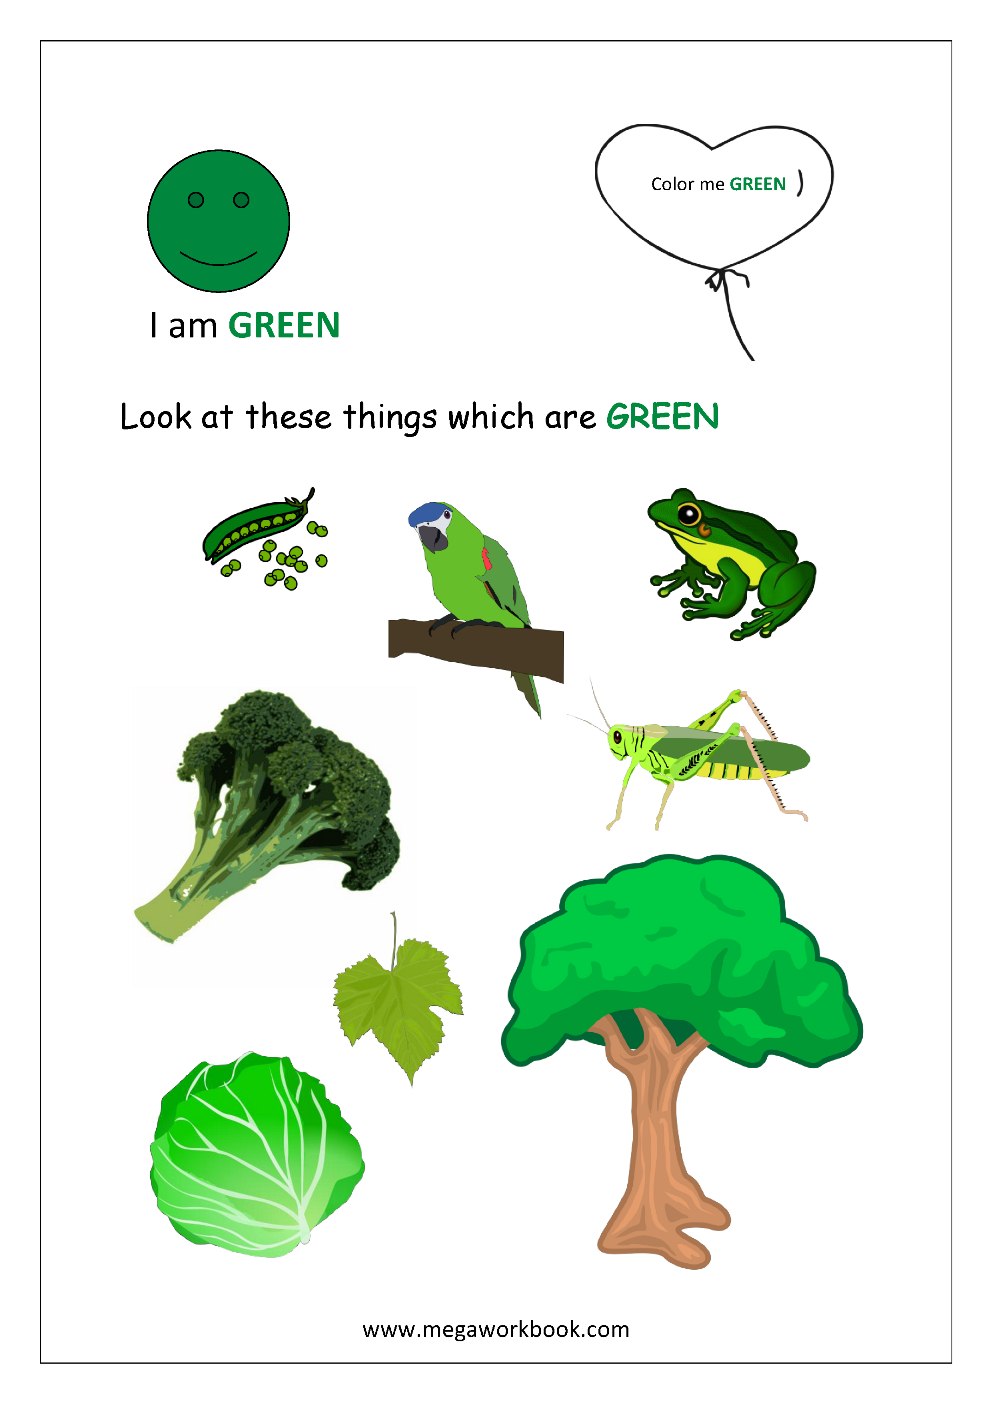 Color Recognition Worksheets For Preschool Learn Basic Colors Green Learning Colors Toddler Color Learning Colors For Toddlers [ 1403 x 992 Pixel ]